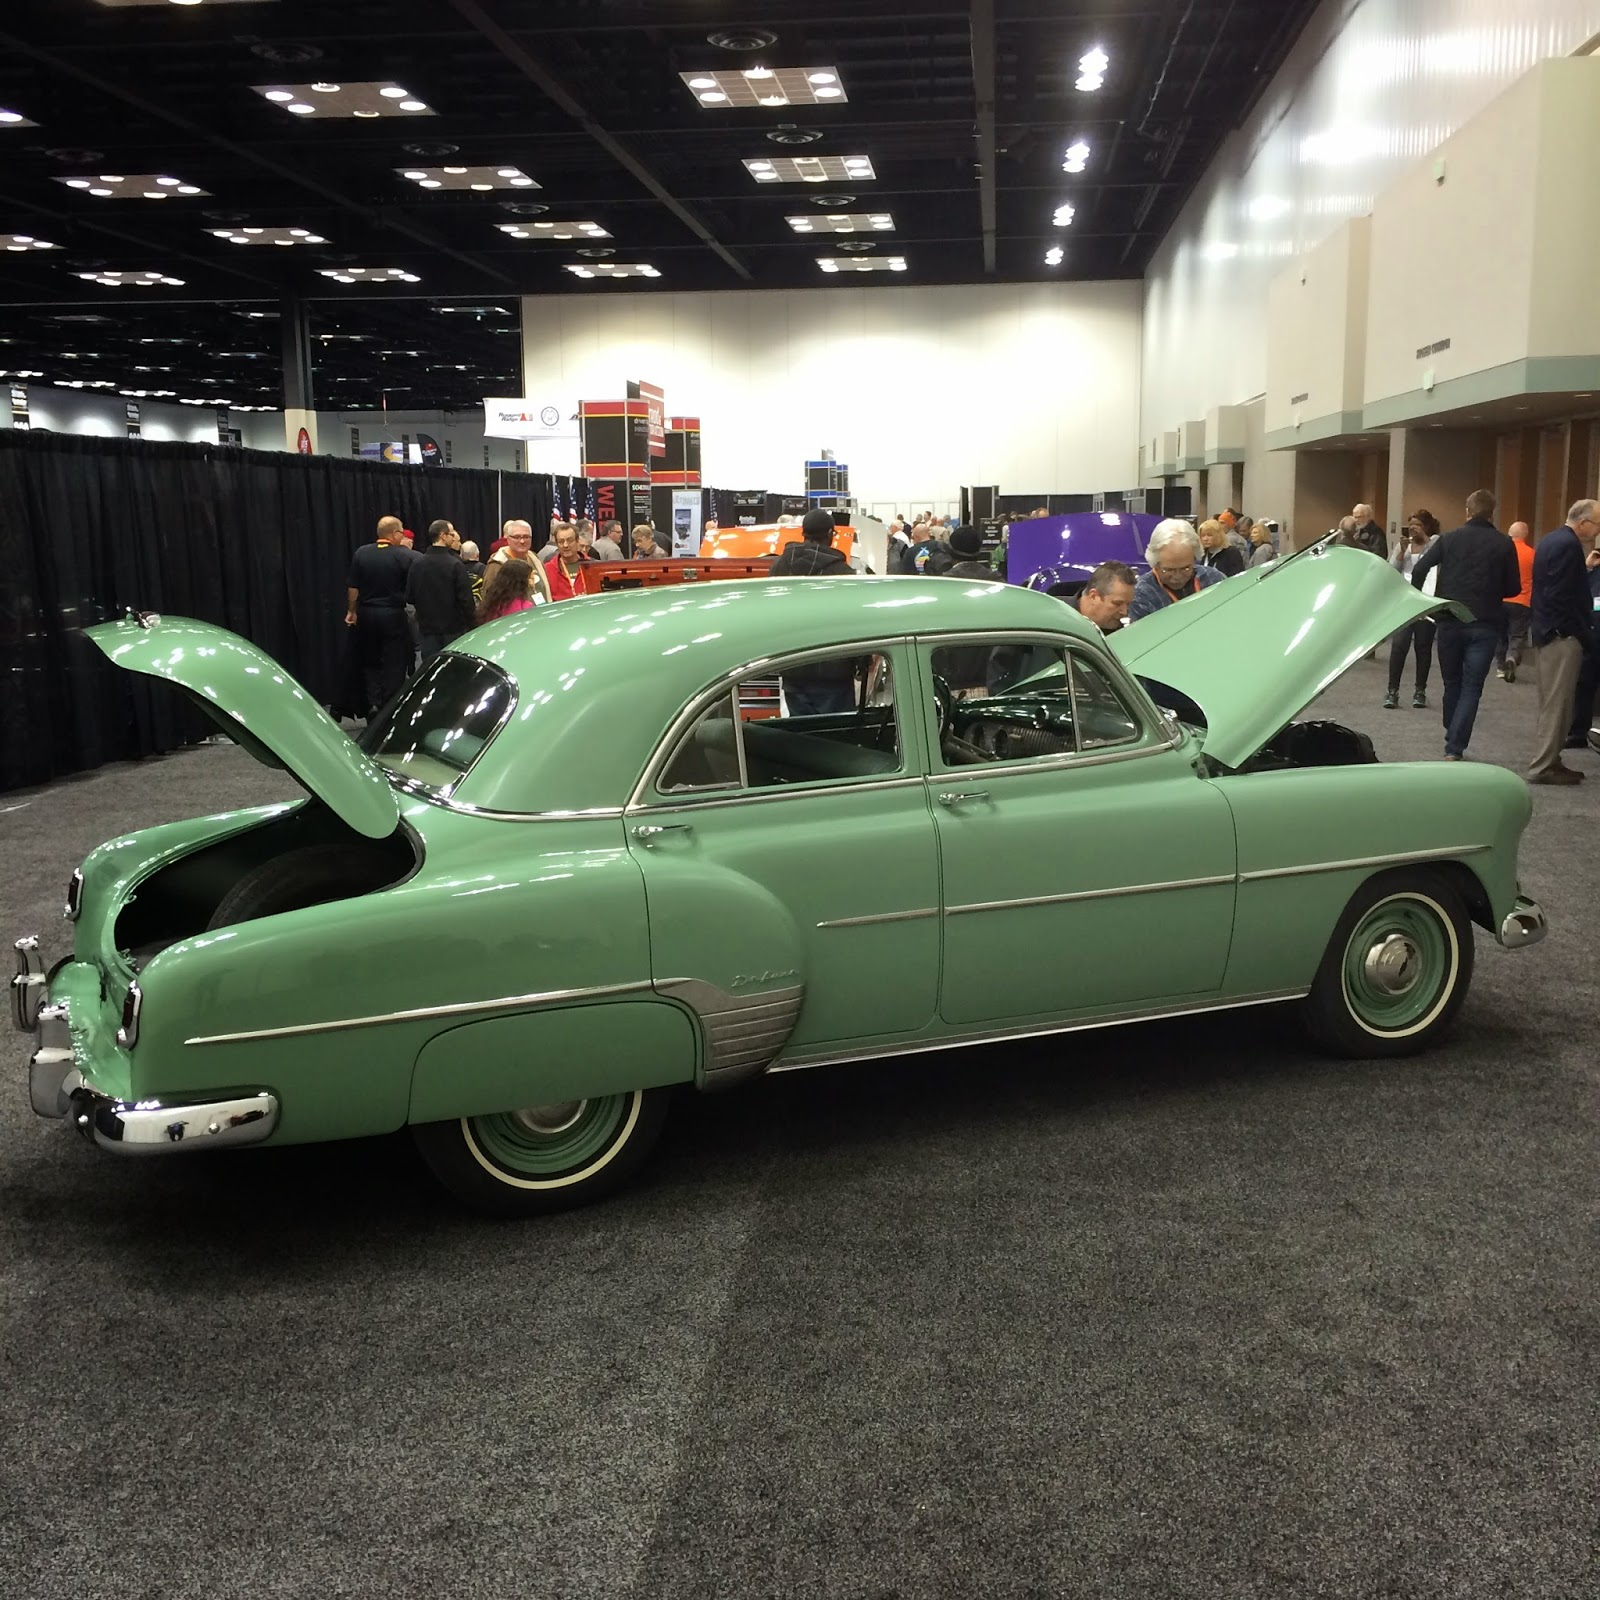 Covering Classic Cars : Hot Rod & Restoration Trade Show in Indianapolis